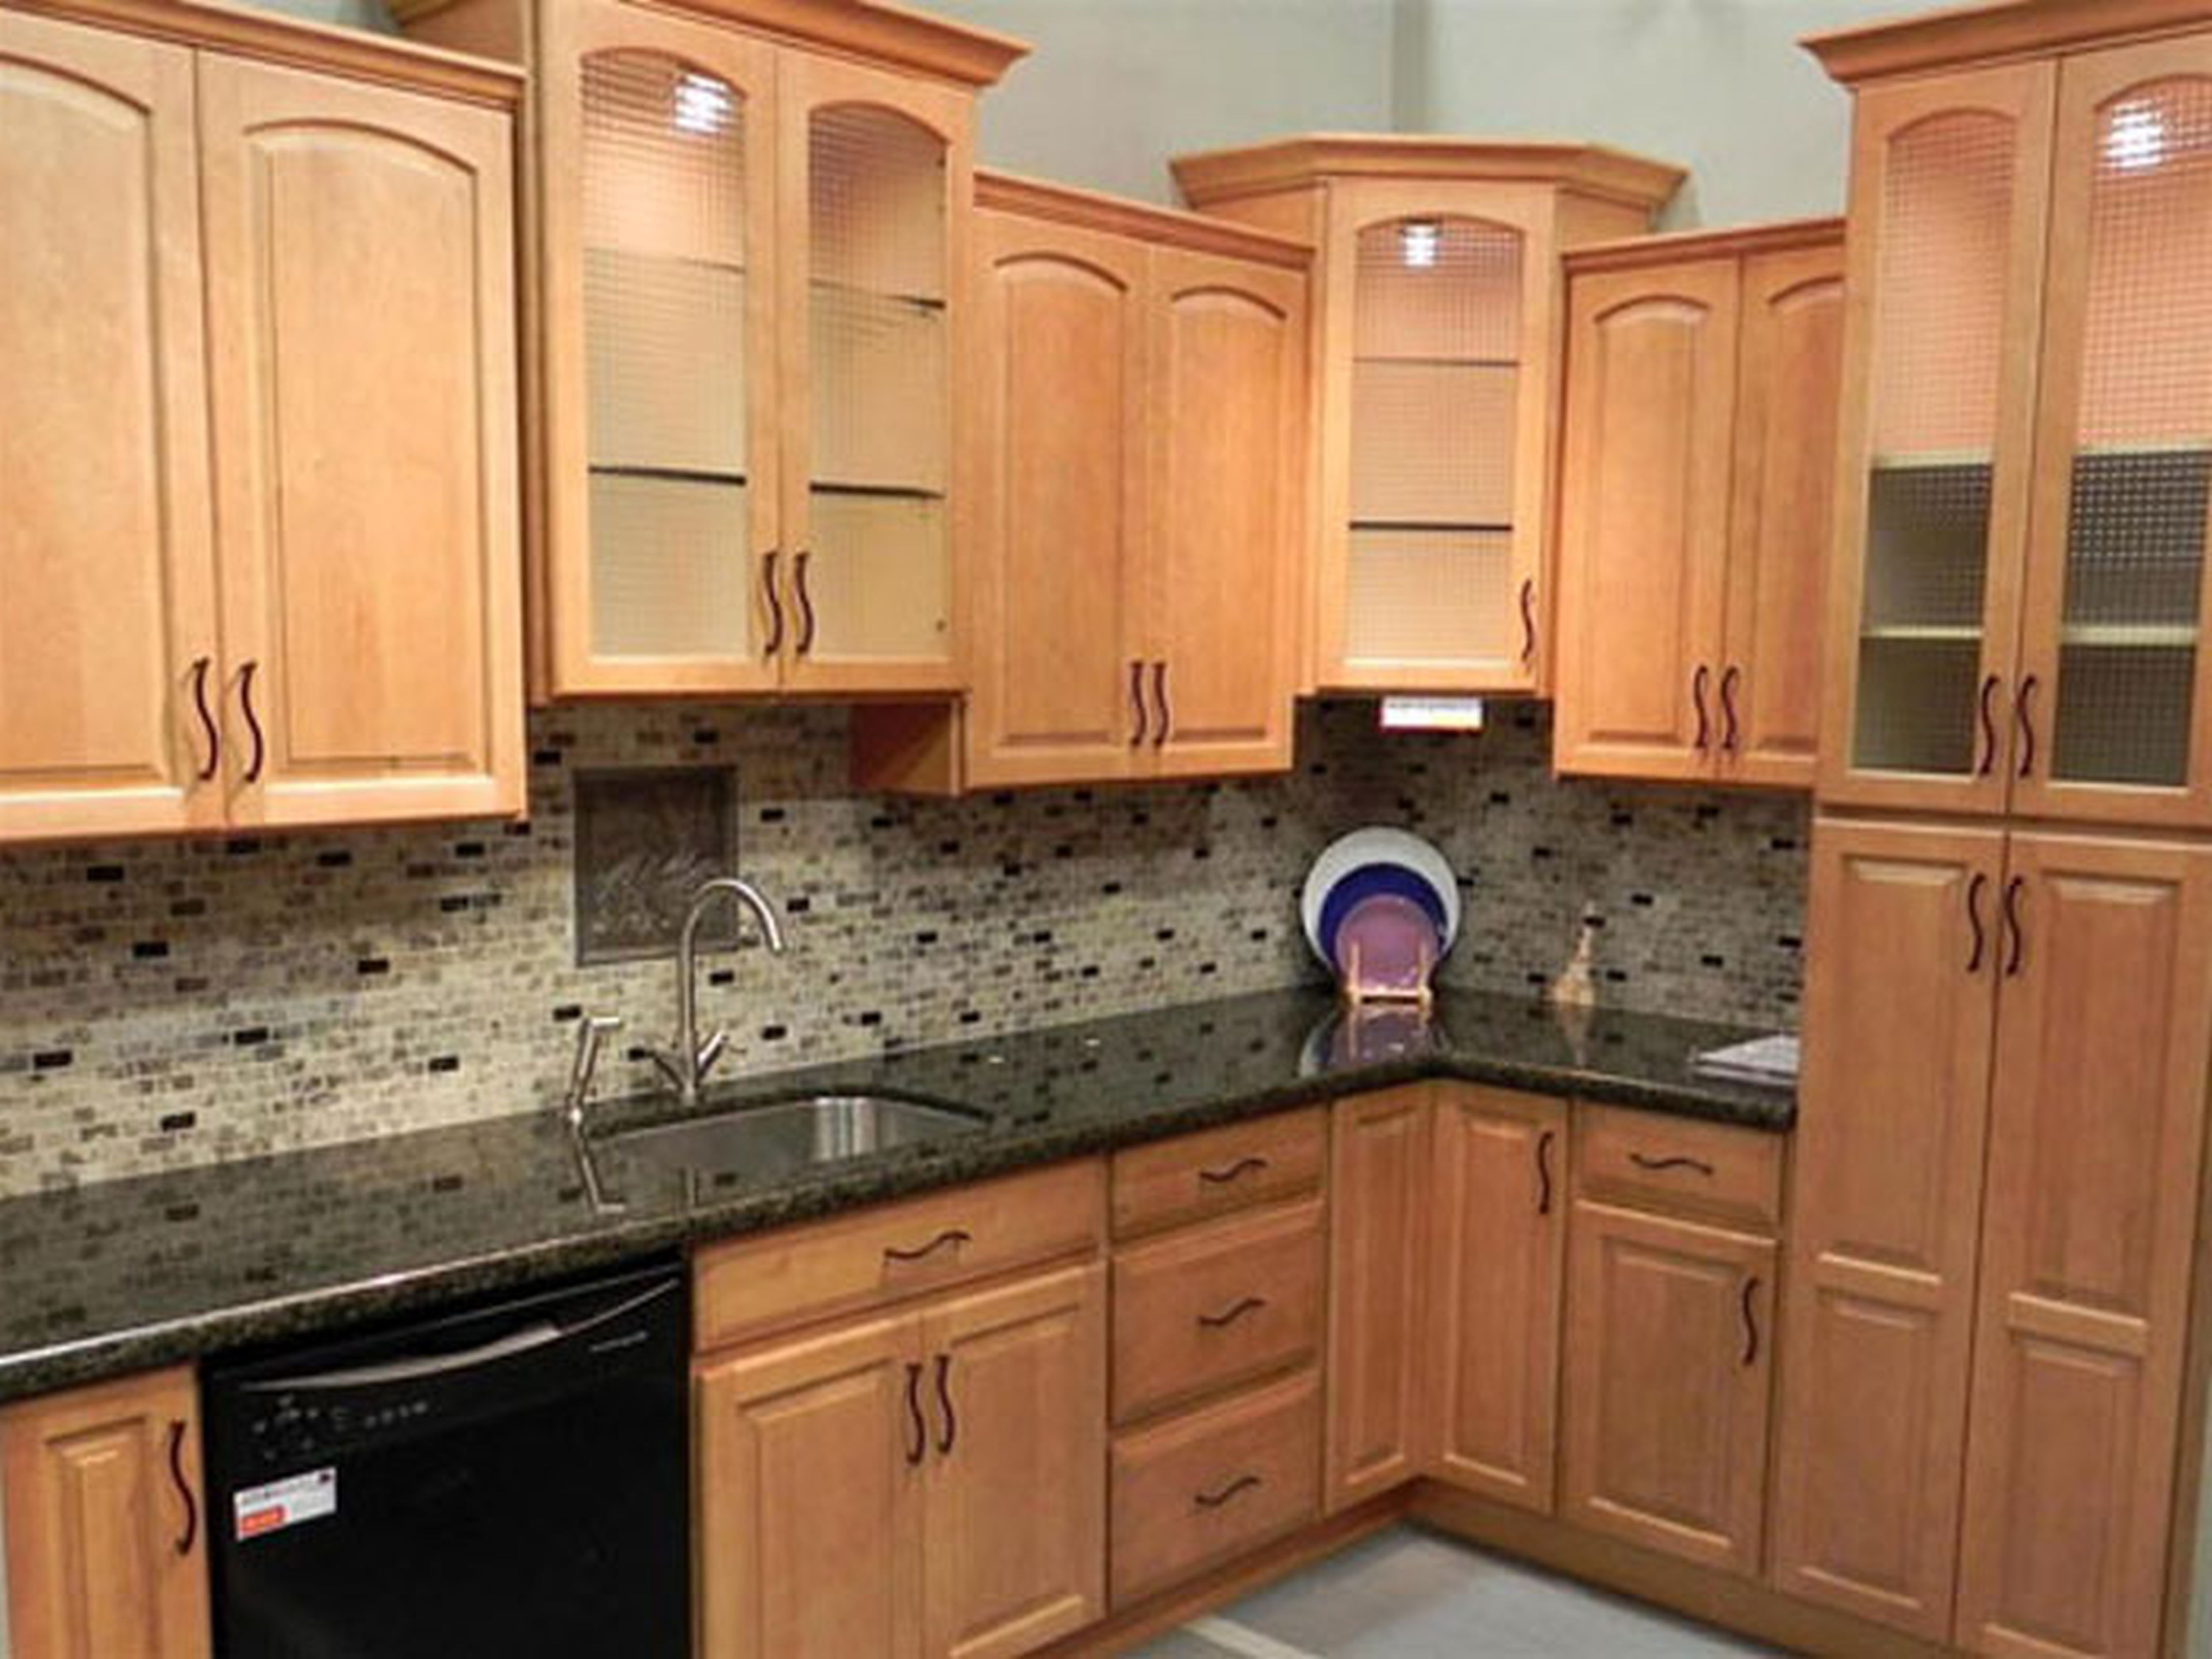 Hardware For Oak Cabinets Kitchen Cabinet Components Is An Important Accessory The Home It S To Pick Pr